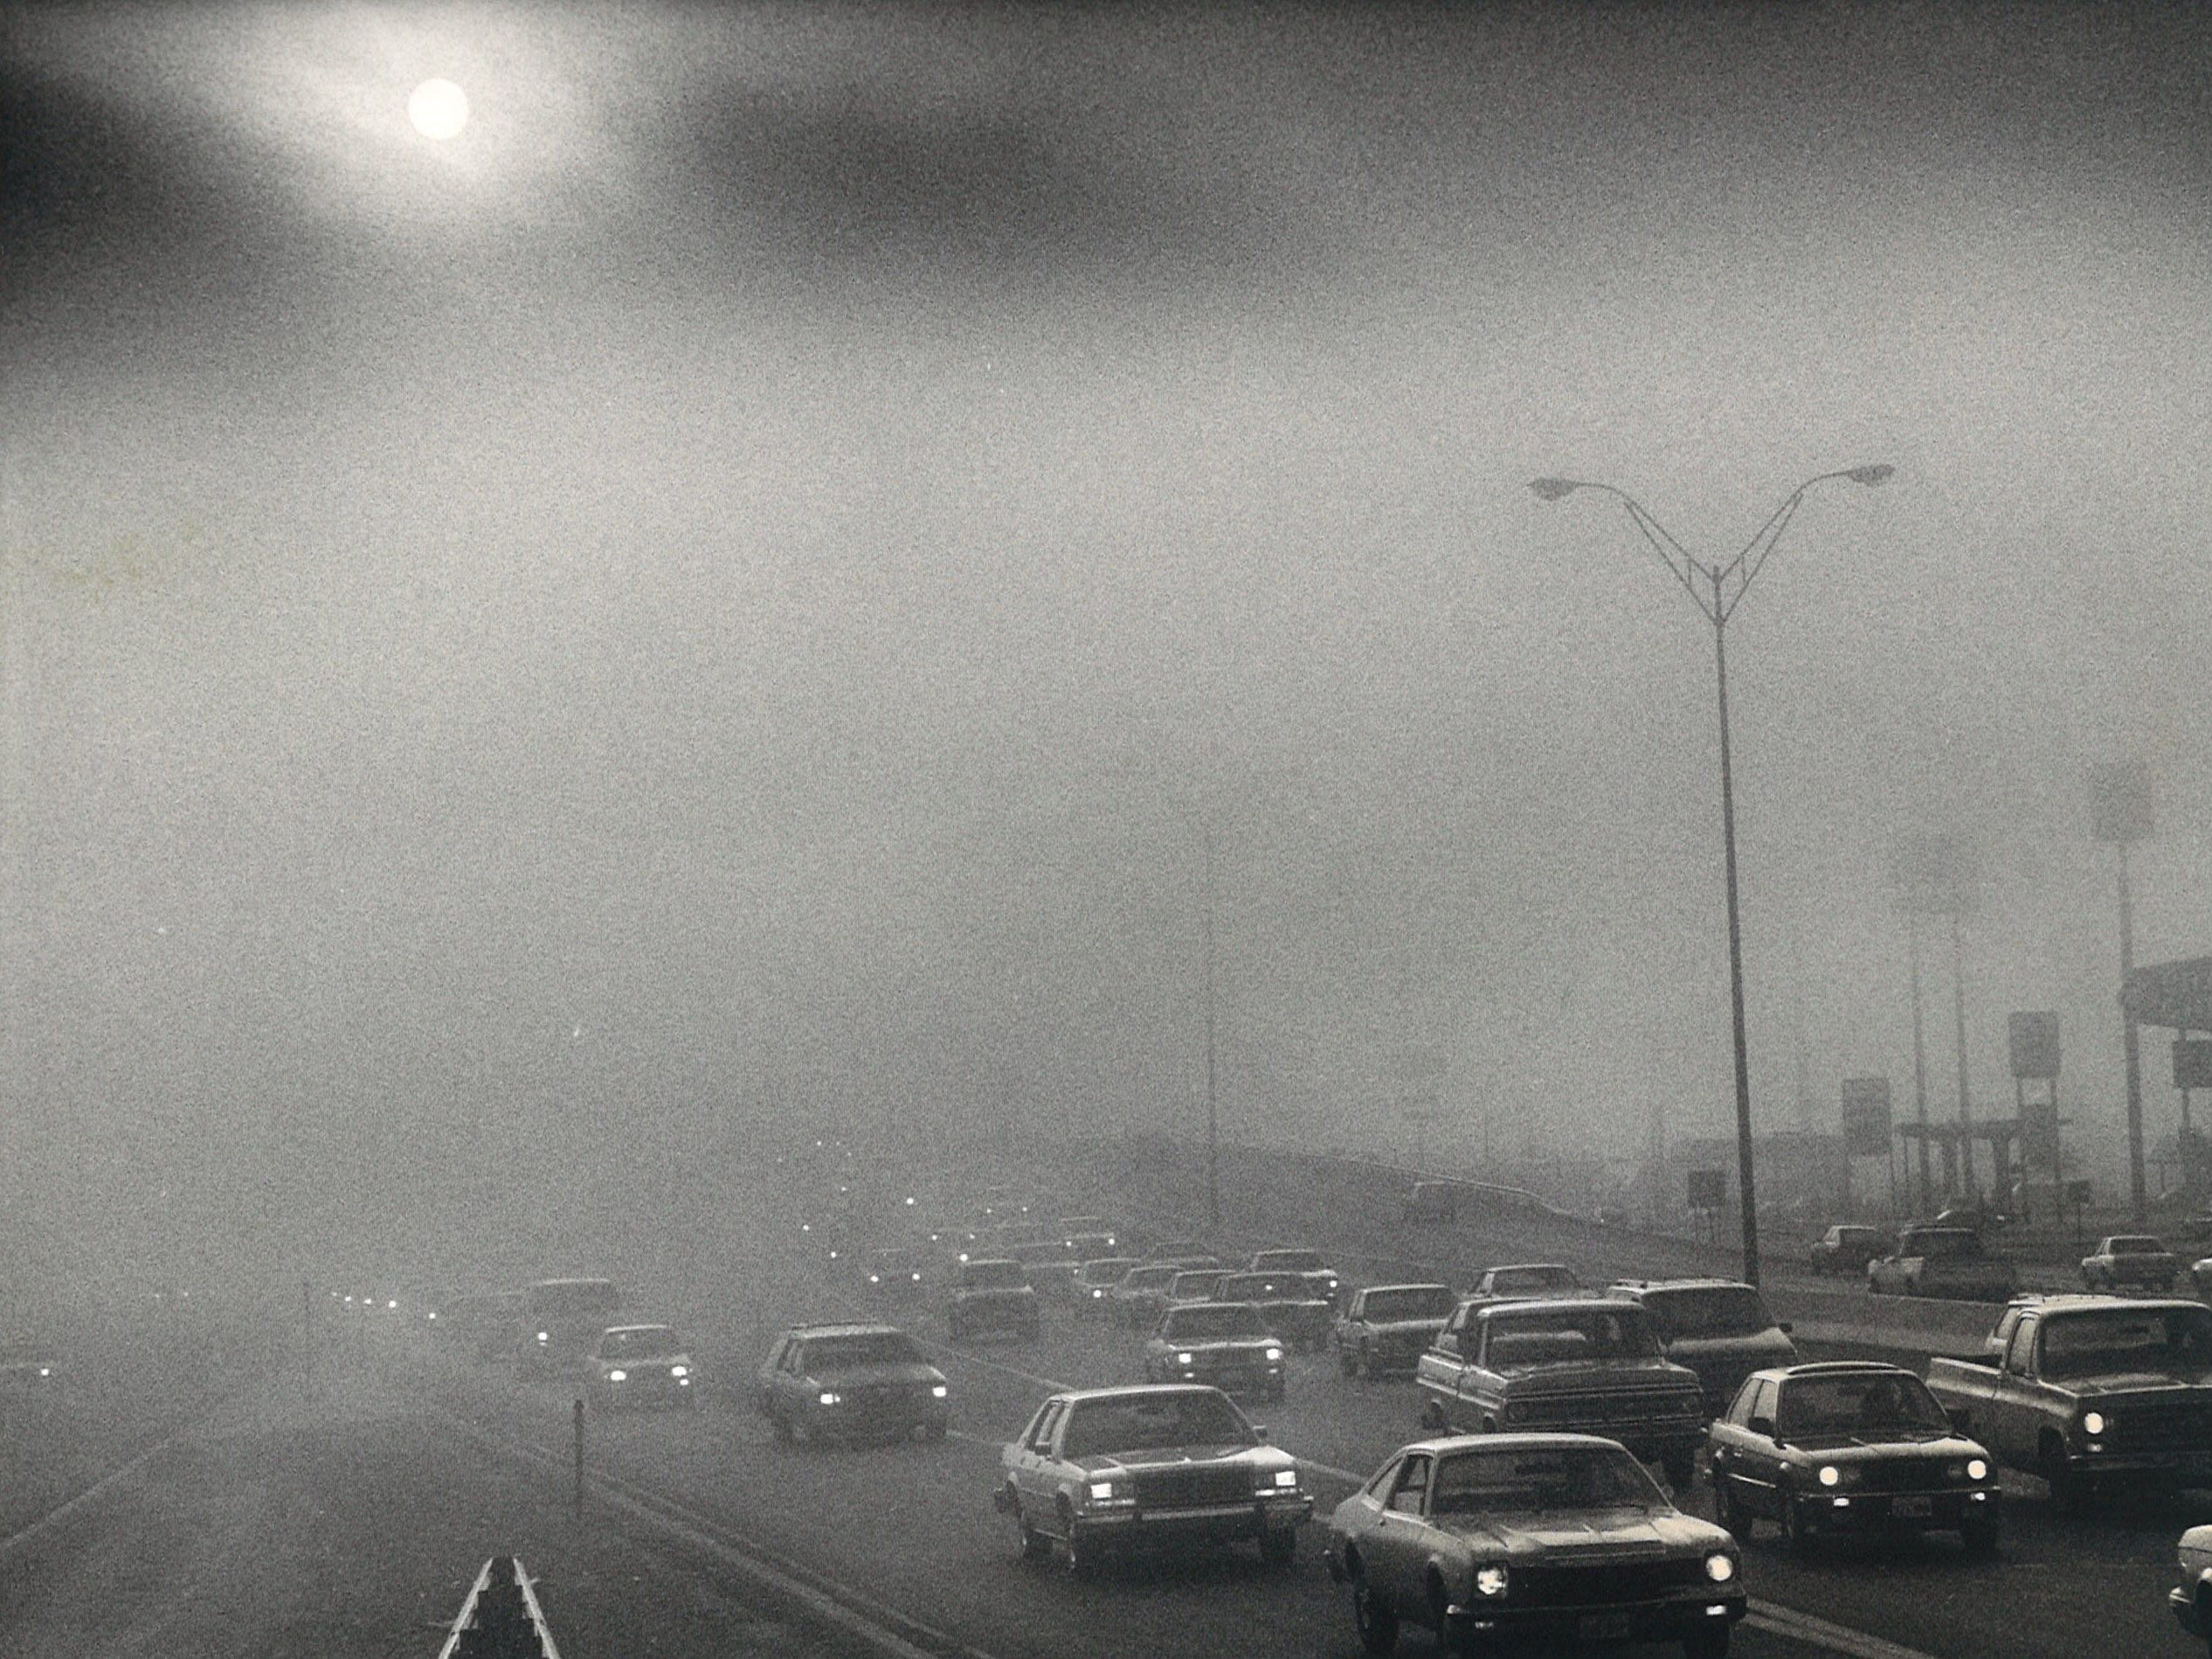 Early morning traffic on SPID at Weber had a foggy commute on Nov. 18, 1986 as the sun tried to shine.